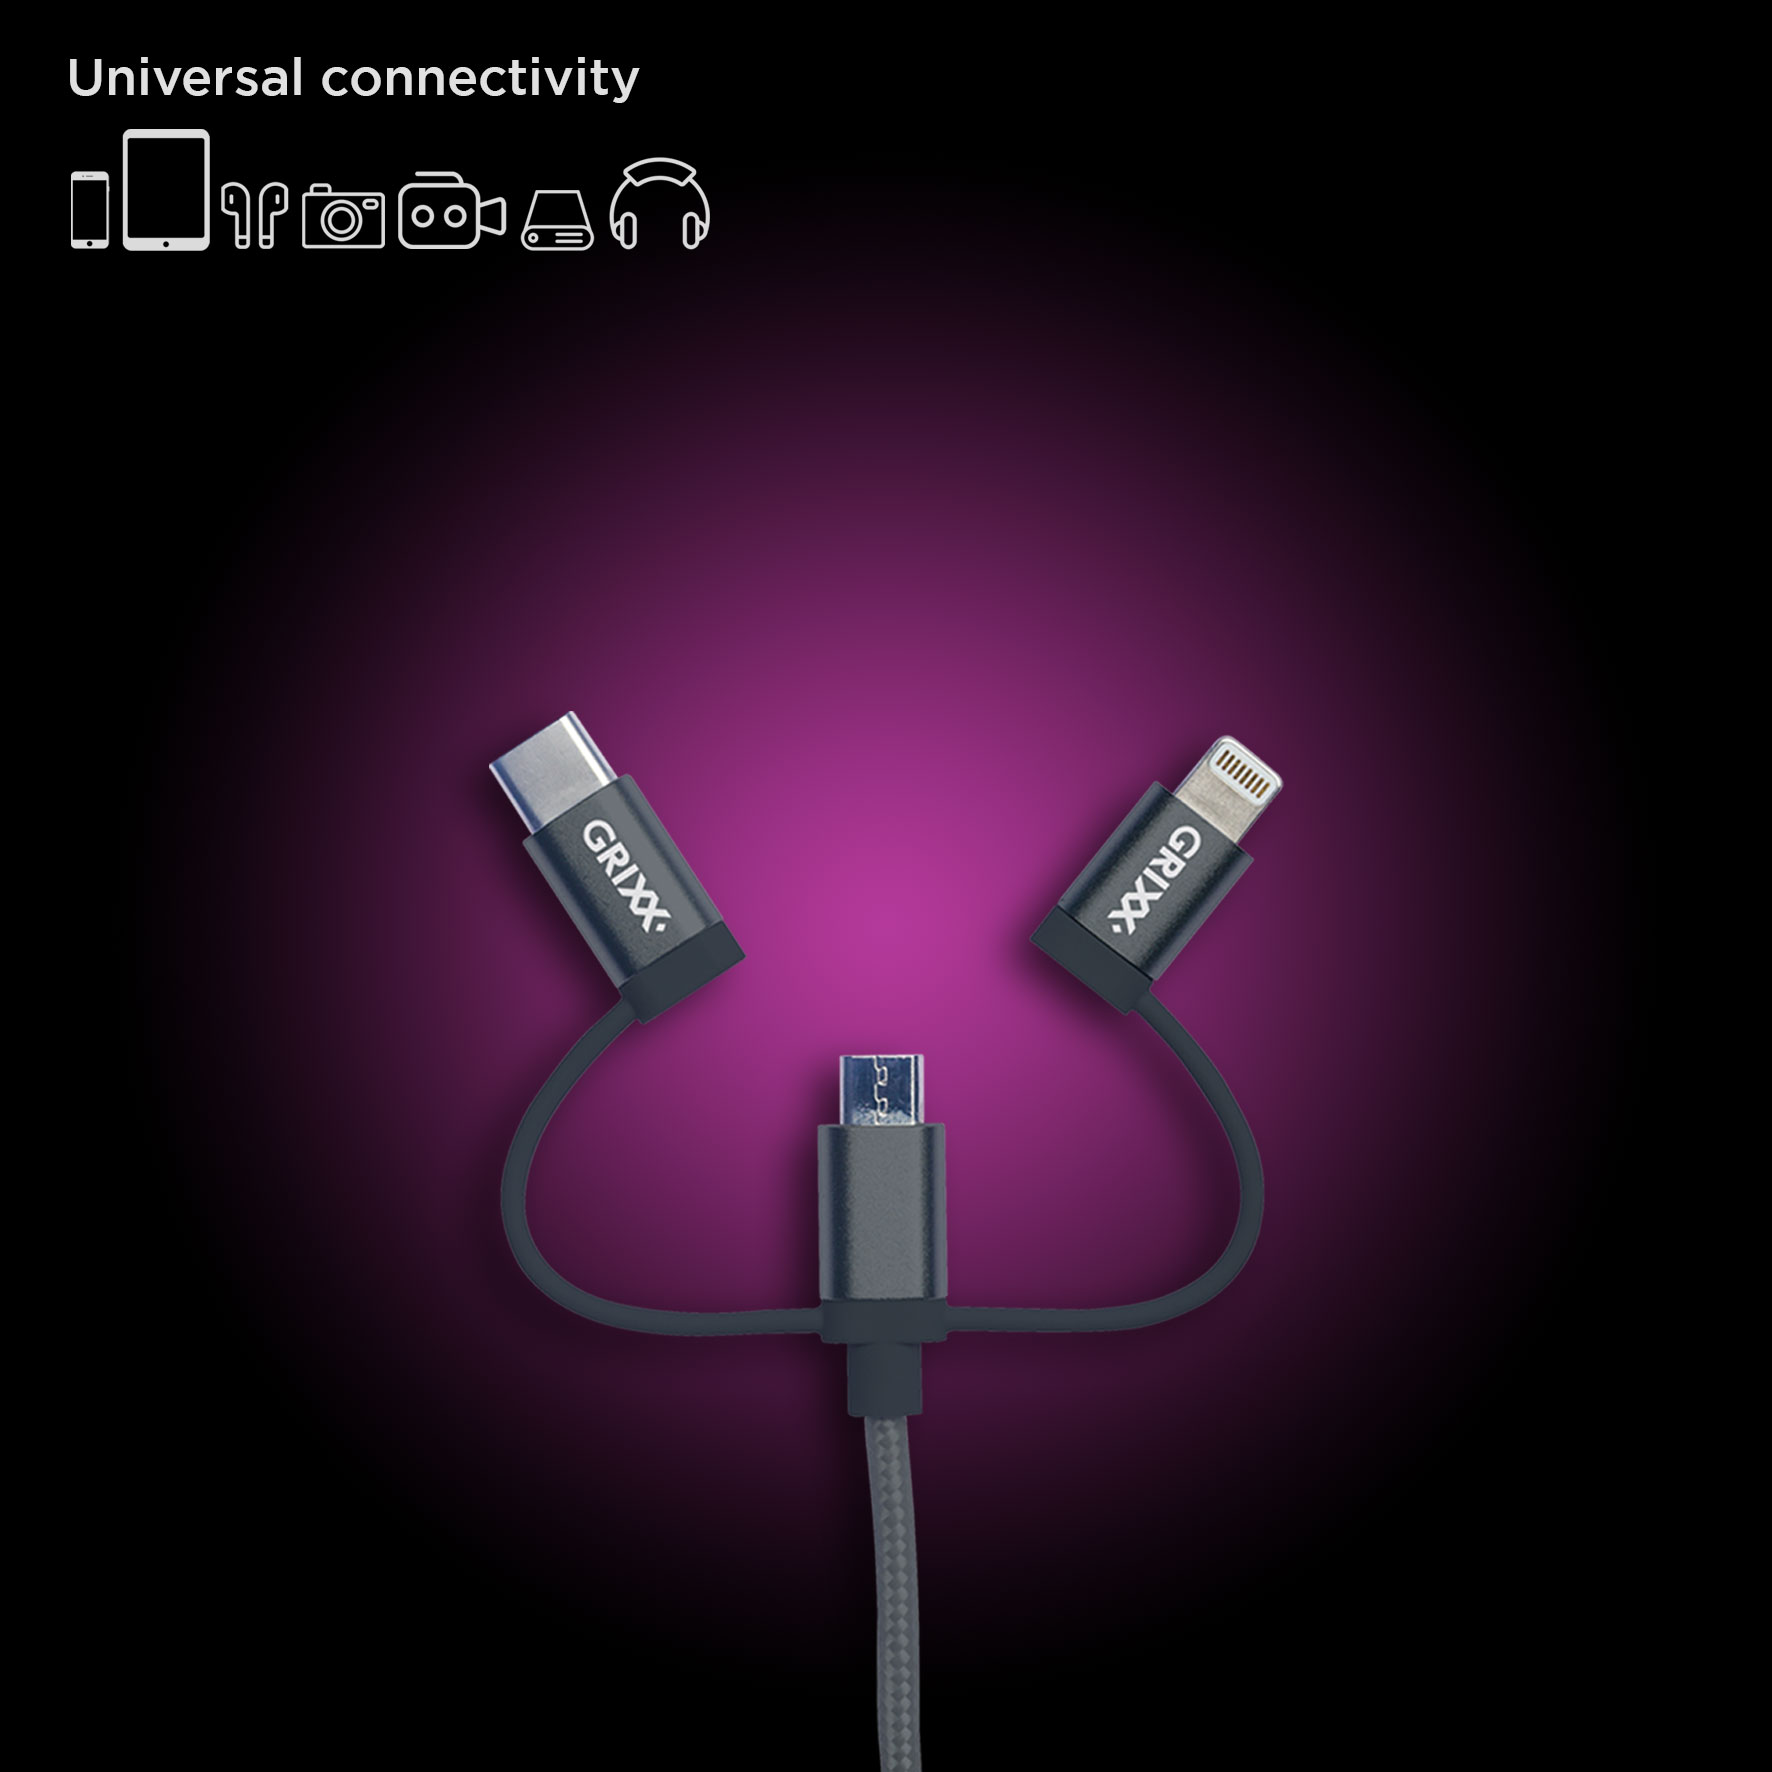 3-in-1 Cable